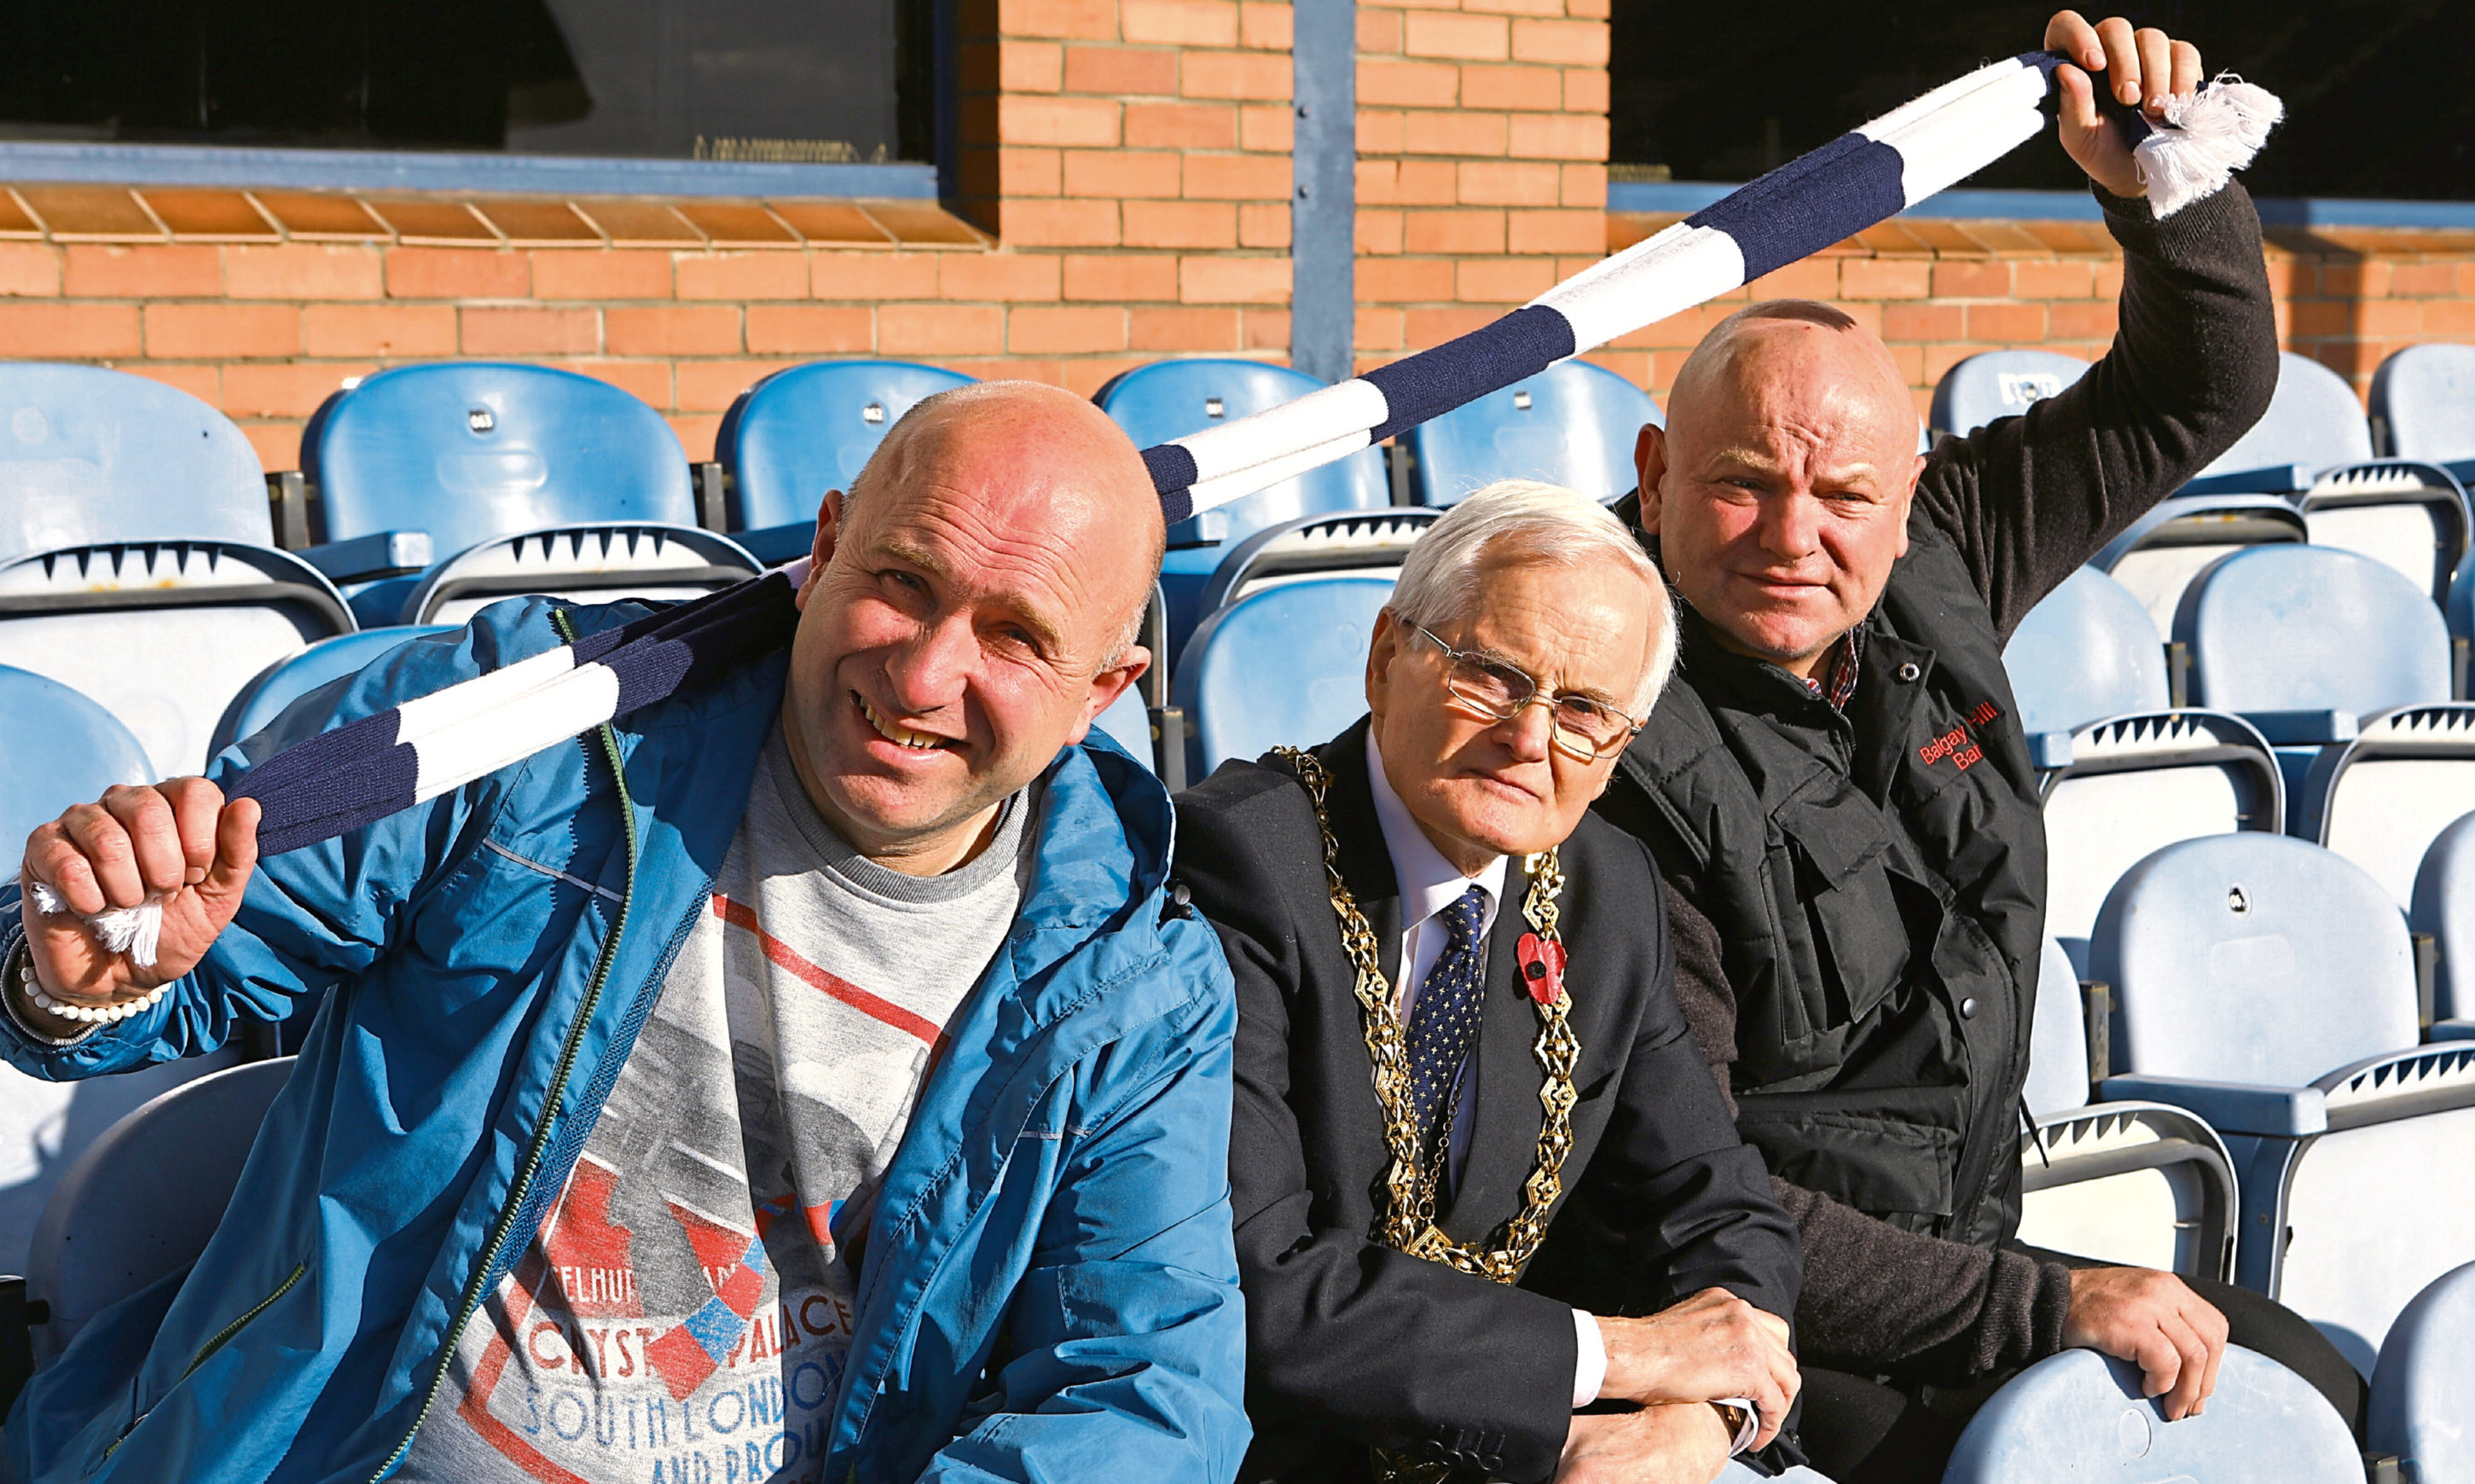 Lord Provost Ian Borthwick with Richard Peter-Tennant, left, and Paul Murphy.